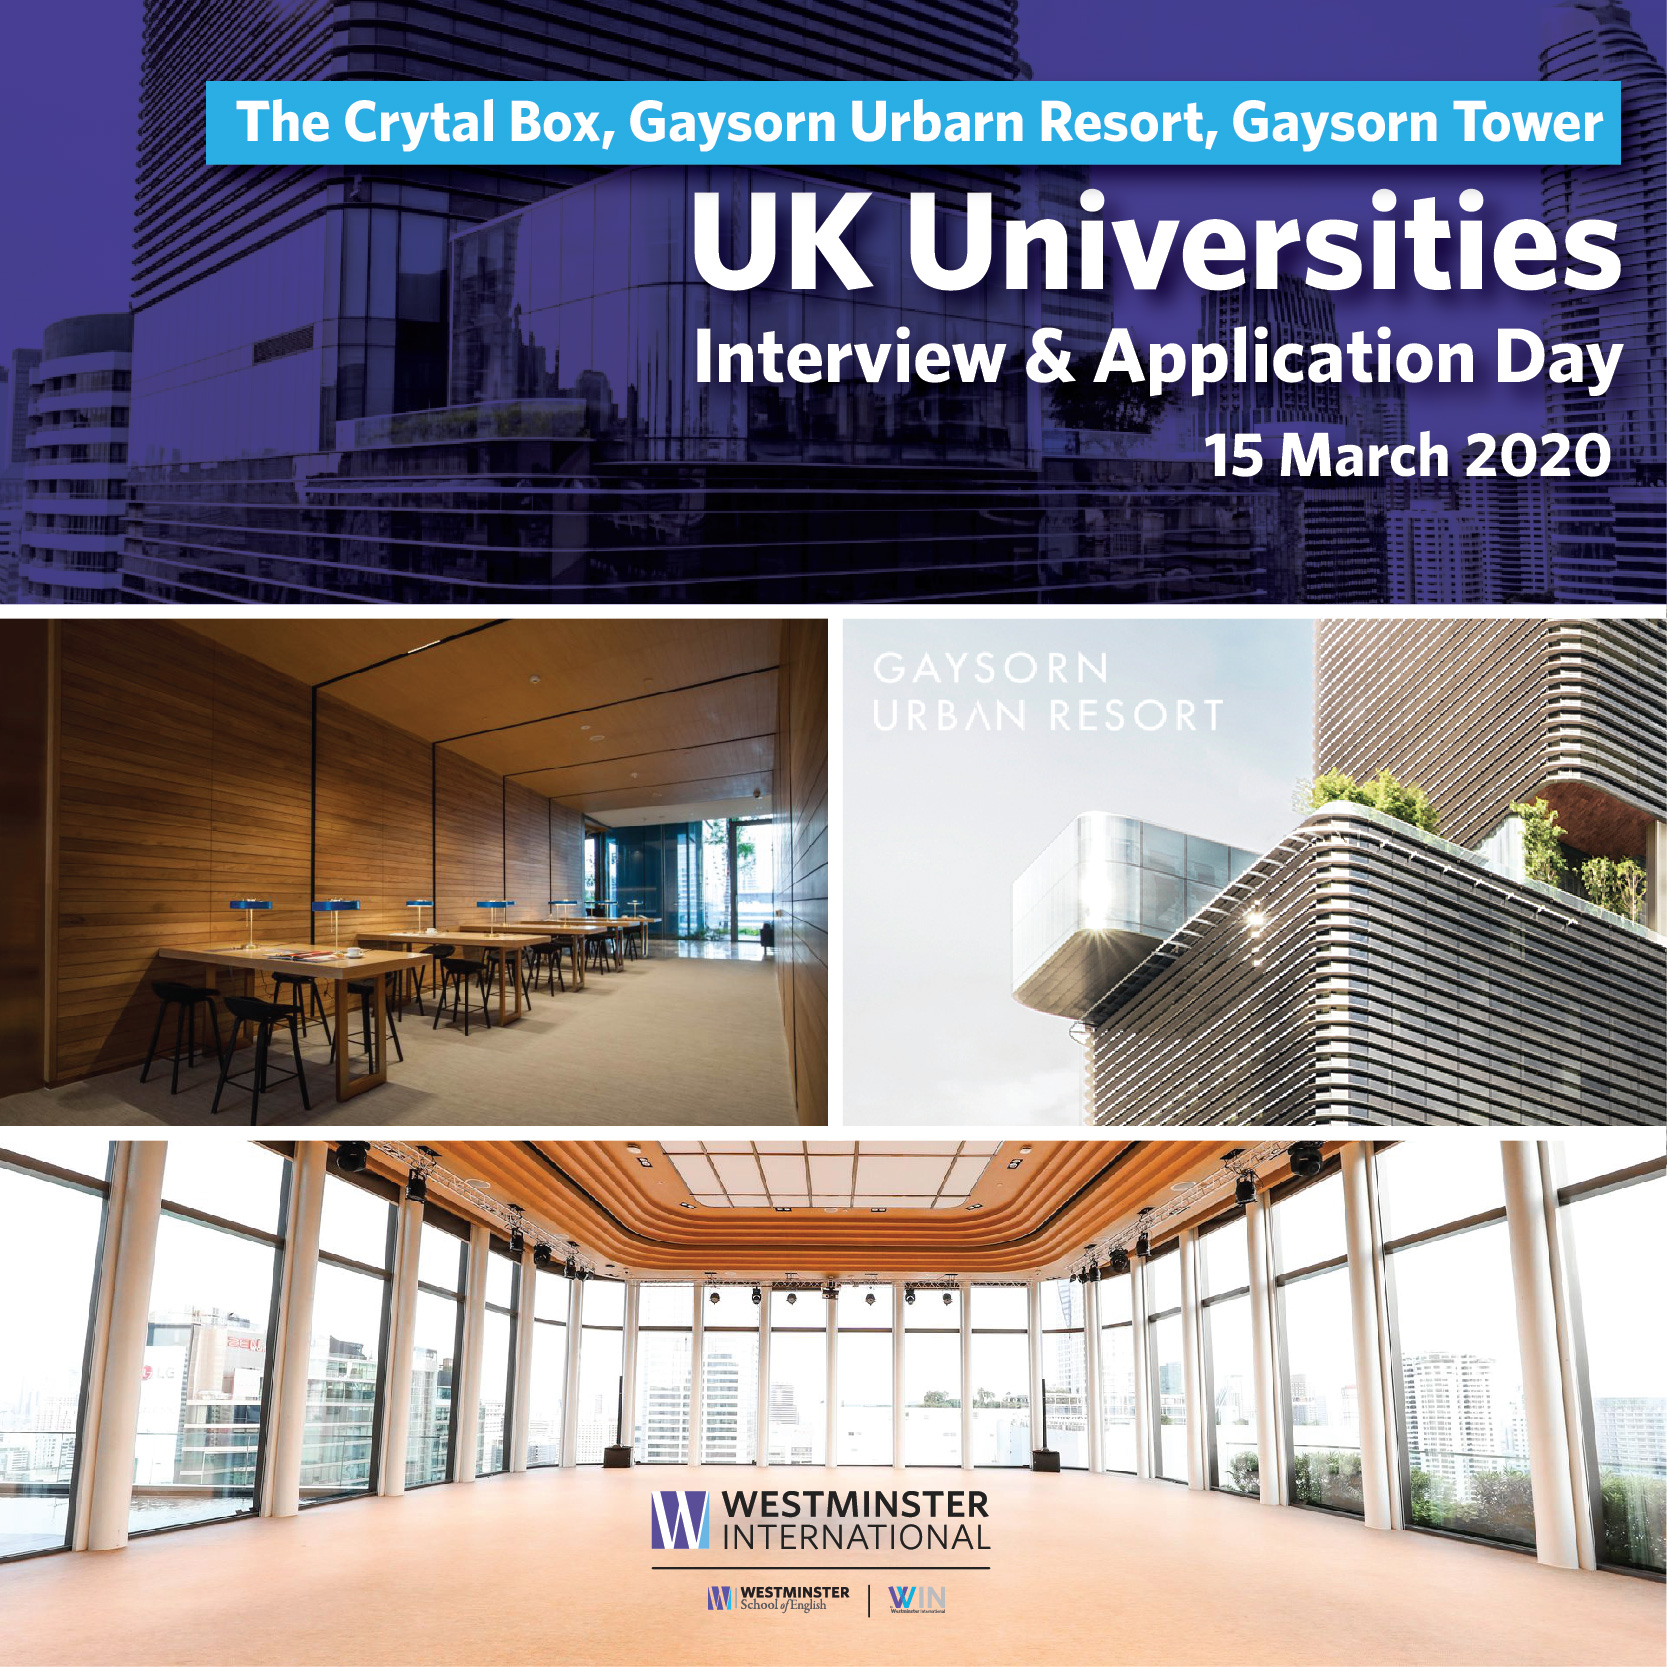 UK Universities Interview & Application Day – 15 March 2020